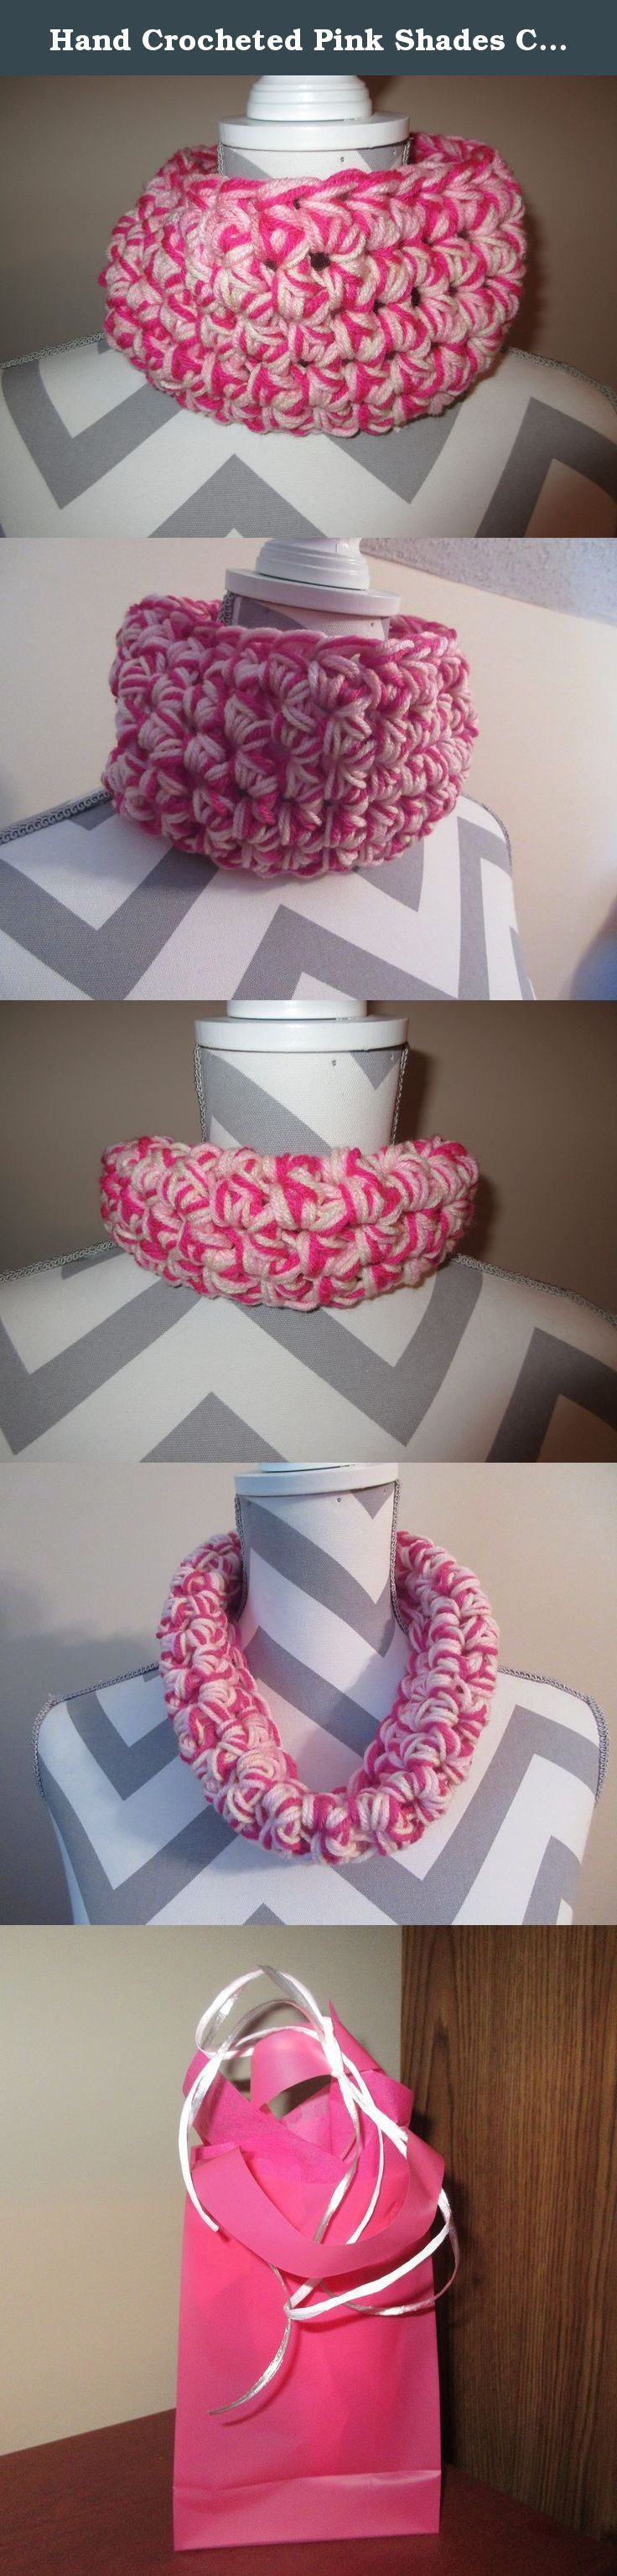 Hand Crocheted Pink Shades Chunky Cowl Scarf Tunnel Neck Warmer Design by Ladies Fashion Infinity Fall Winter OSFA Handmade Gift for Her Gift Bag and Ribbon Included. Handmade Super Soft Pink Shades Tunnel Cowl Neck Warmer Scarf Hand Crocheted Cowl Infinity Design 22 inches circumference (hand crocheted together in one loop 5 inches tall can be worn as a neck warmer or turned down as a very soft warm scarf). Super soft luxe acrylic yarn. Washable - machine on gentle or by hand -- lay flat…